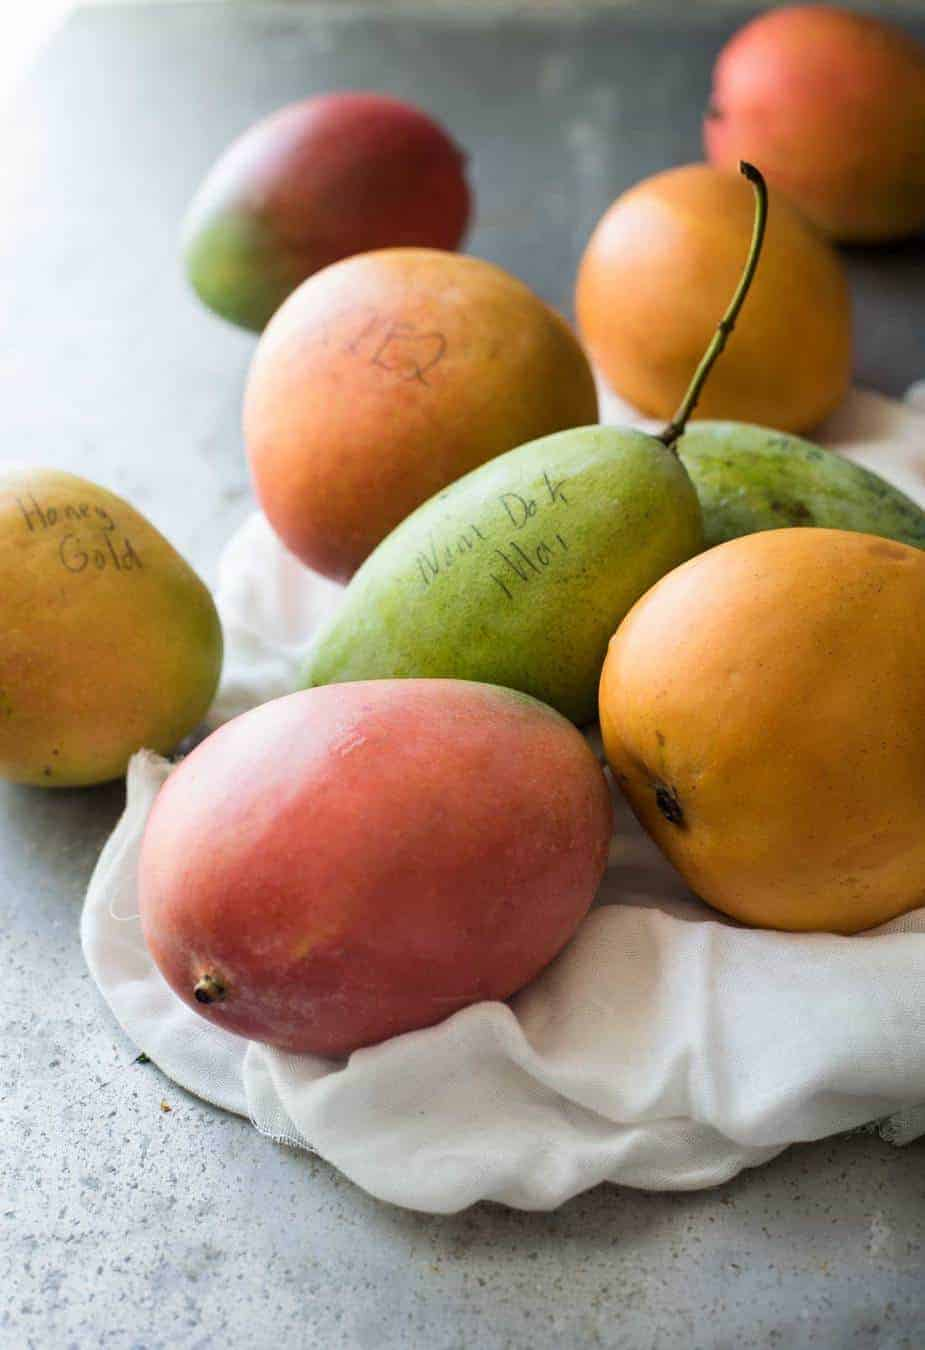 Different mango varieties grown at Groves Grown Tropical Fruits farm